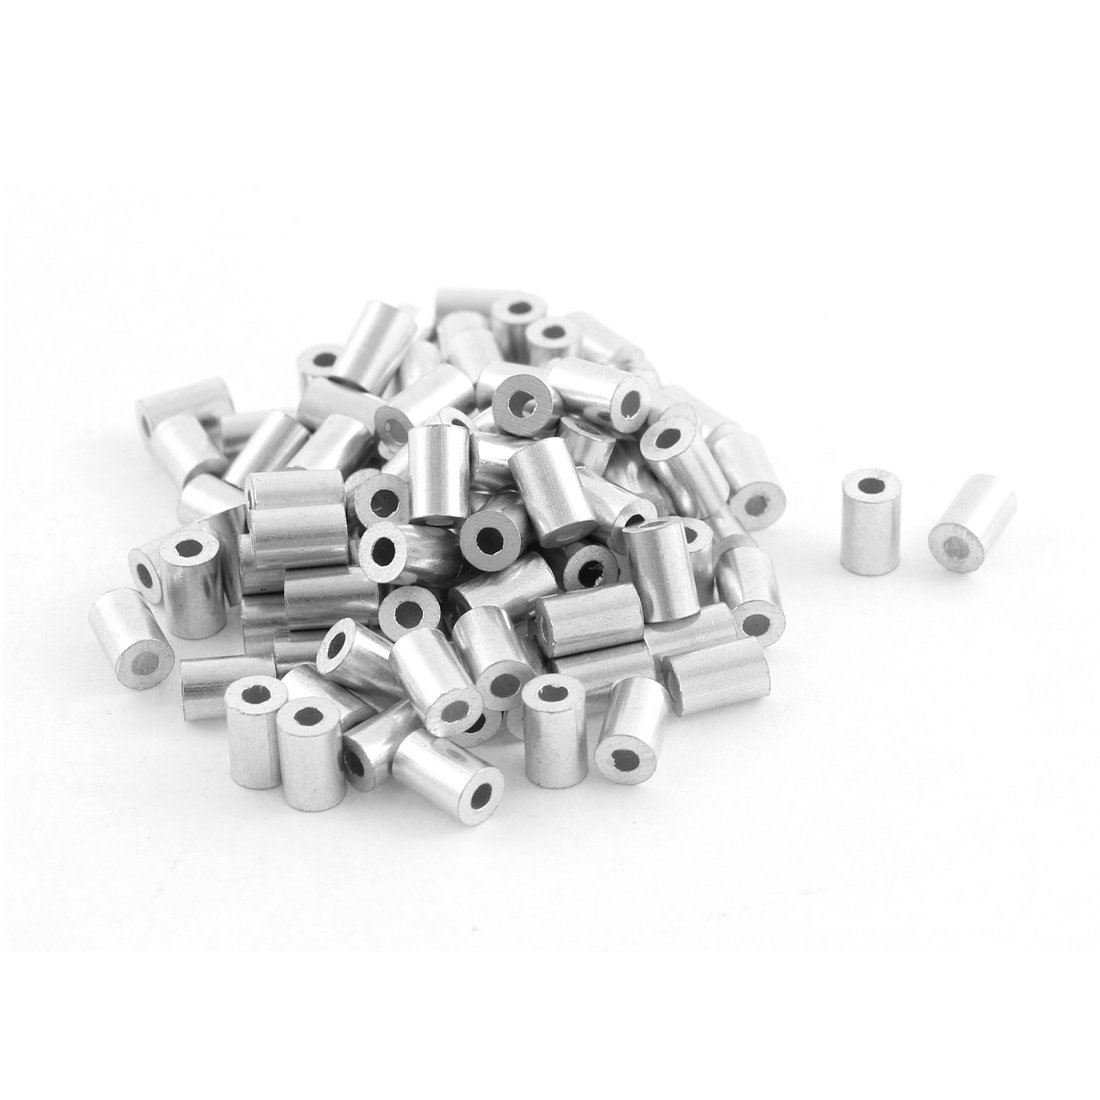 uxcell 100pcs Aluminum Cable Stops Sleeve for 1mm Wire Rope Swage ...